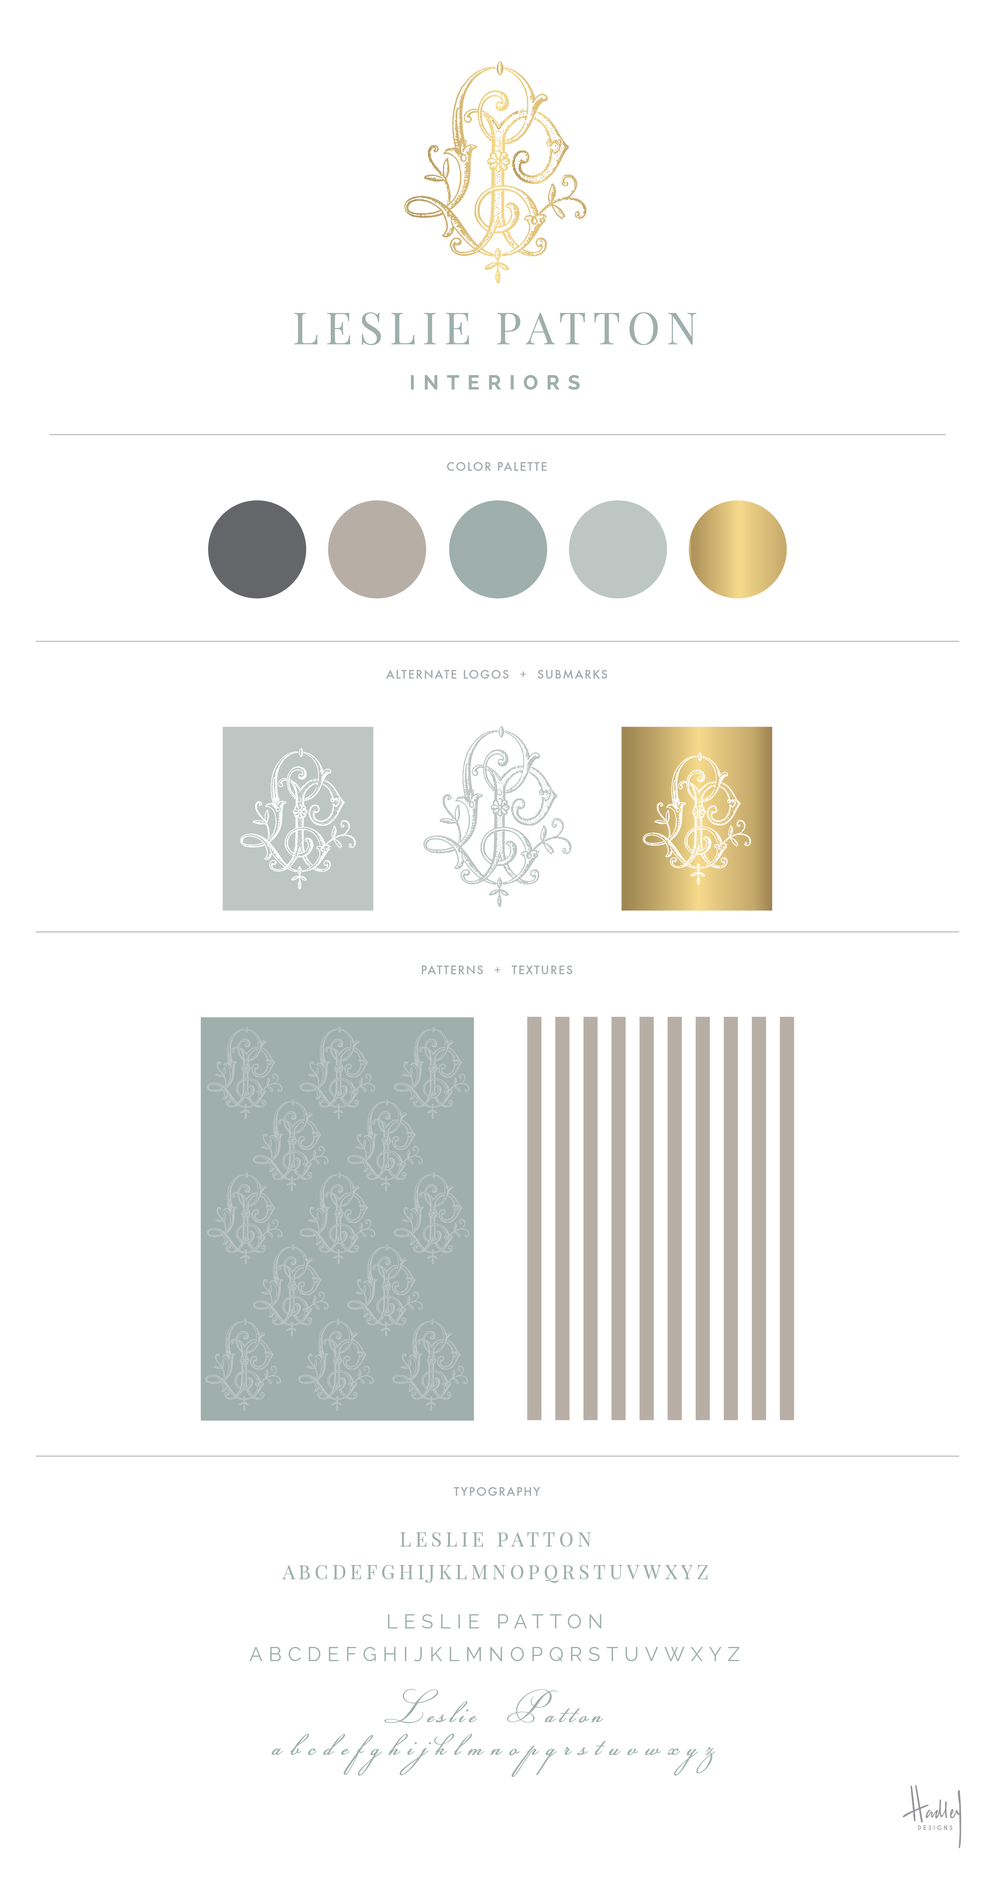 New branding and stationery for the talented Leslie Patton Interiors, located in Jackson, Tennessee. Leslie is an absolute JOY to work with, and I can't wait to get my hands on these printed pieces very soon. New website in the works! Stay tuned...